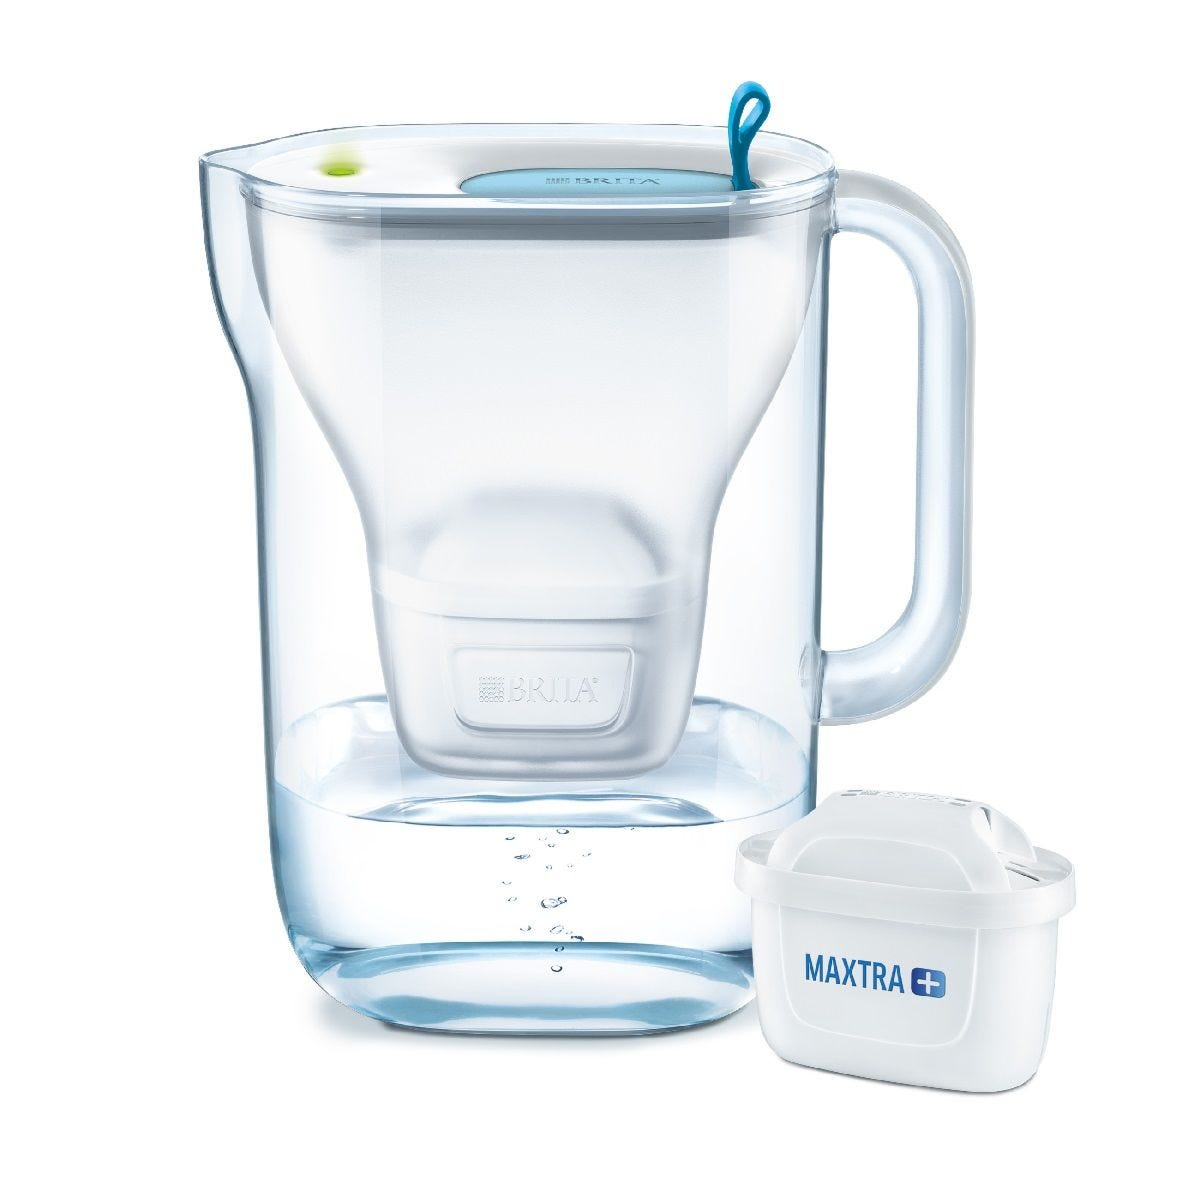 Brita Style Cool Maxtra+ Water Filter 2.4L Jug with Smart Light Indicator - Blue